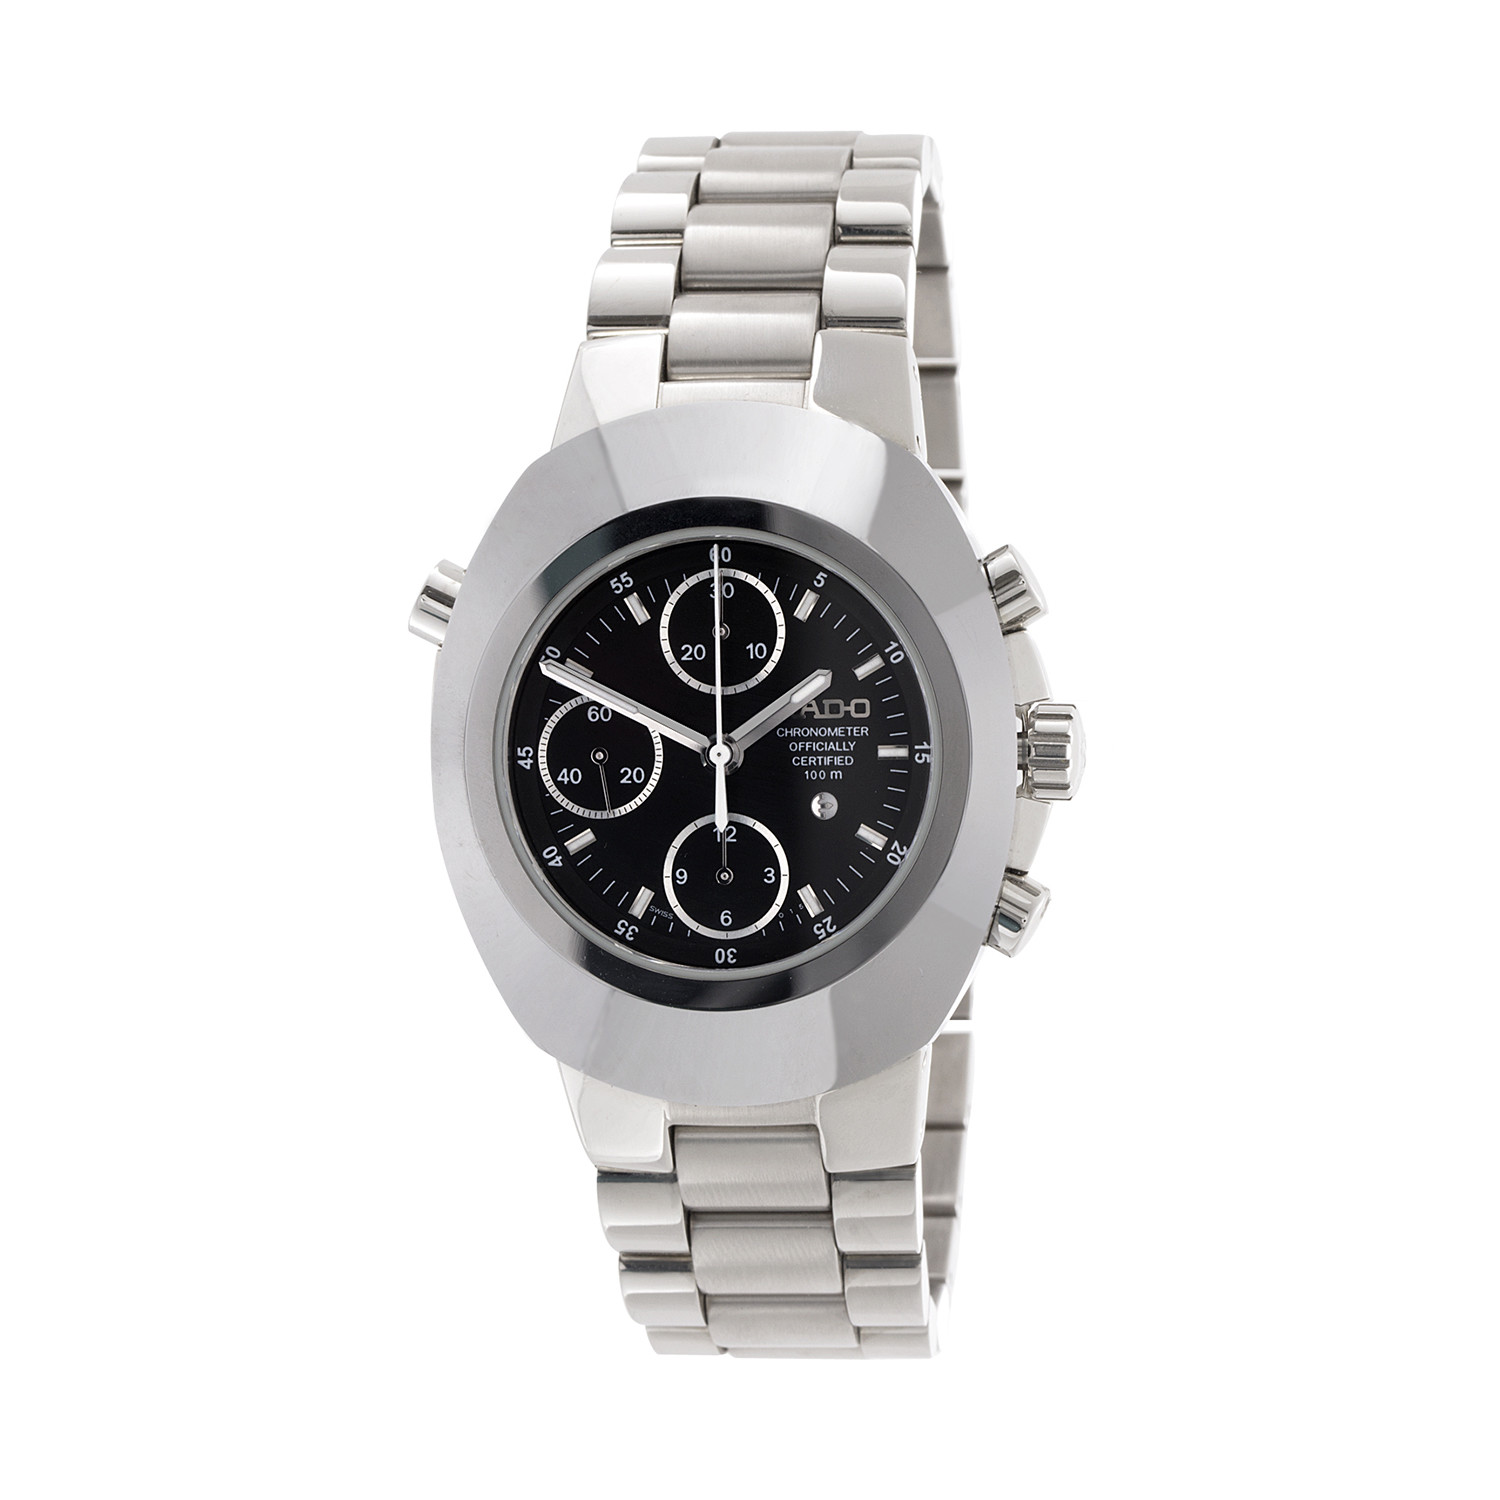 983b73573 Rado Original Split Second Chronograph Automatic // R12694153 // Store  Display